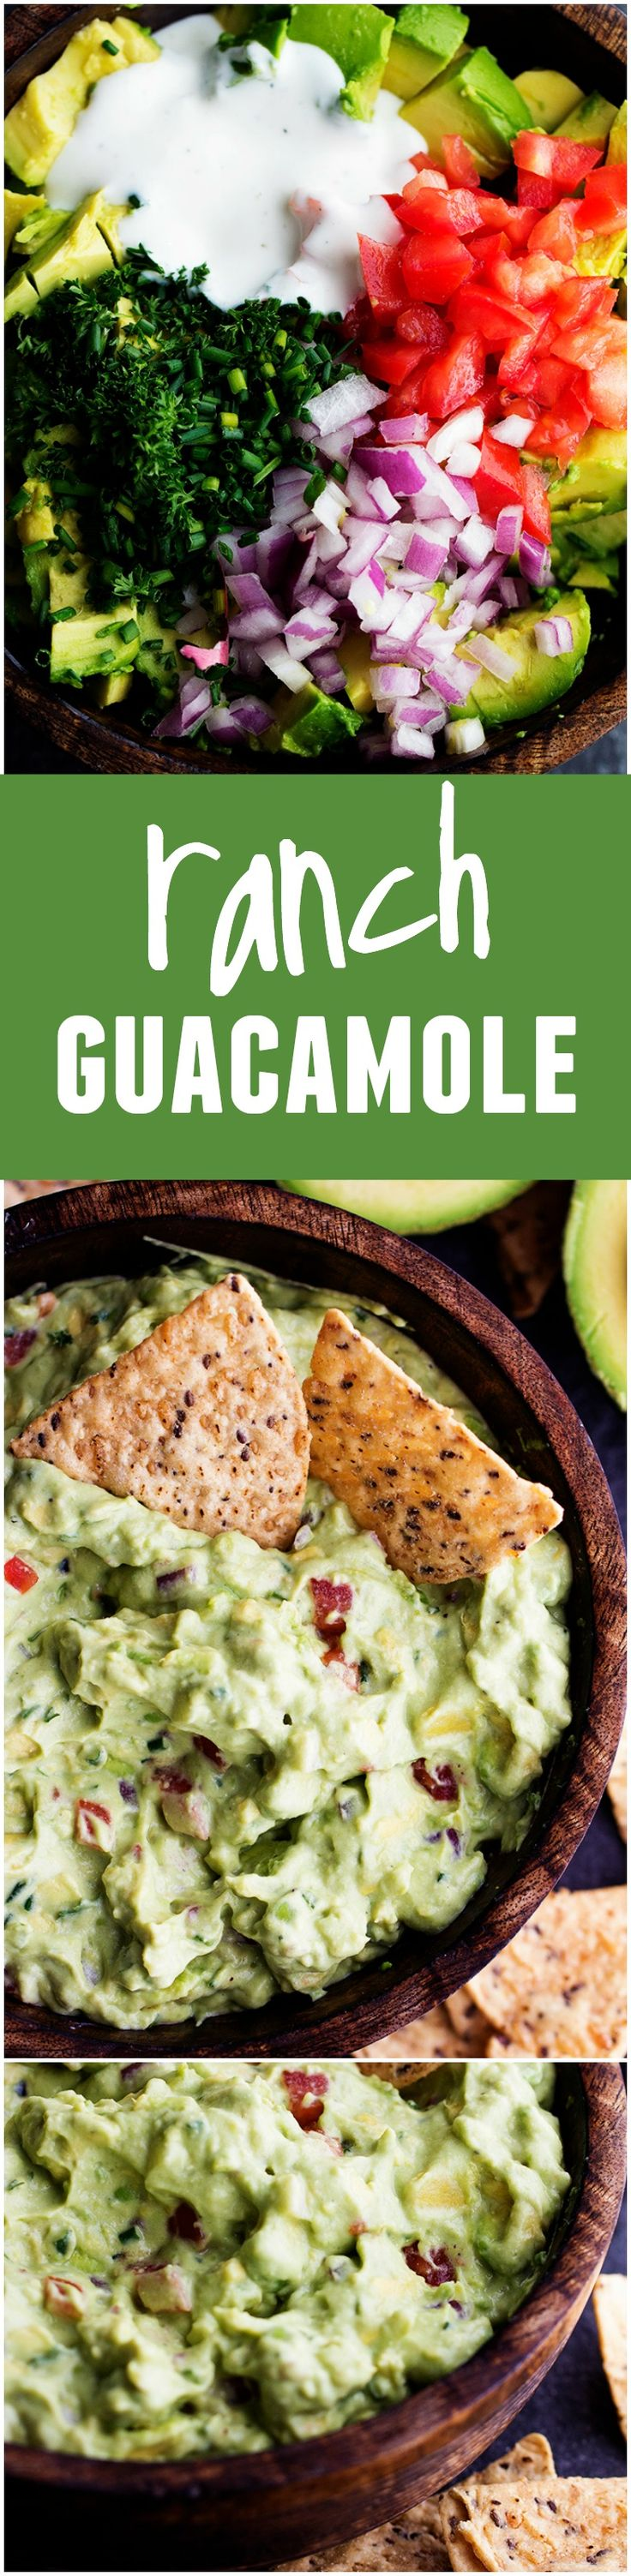 This Ranch Guacamole will be the BEST that you make!! The added ranch flavor to the fresh guac ingredients make one AMAZING dip!